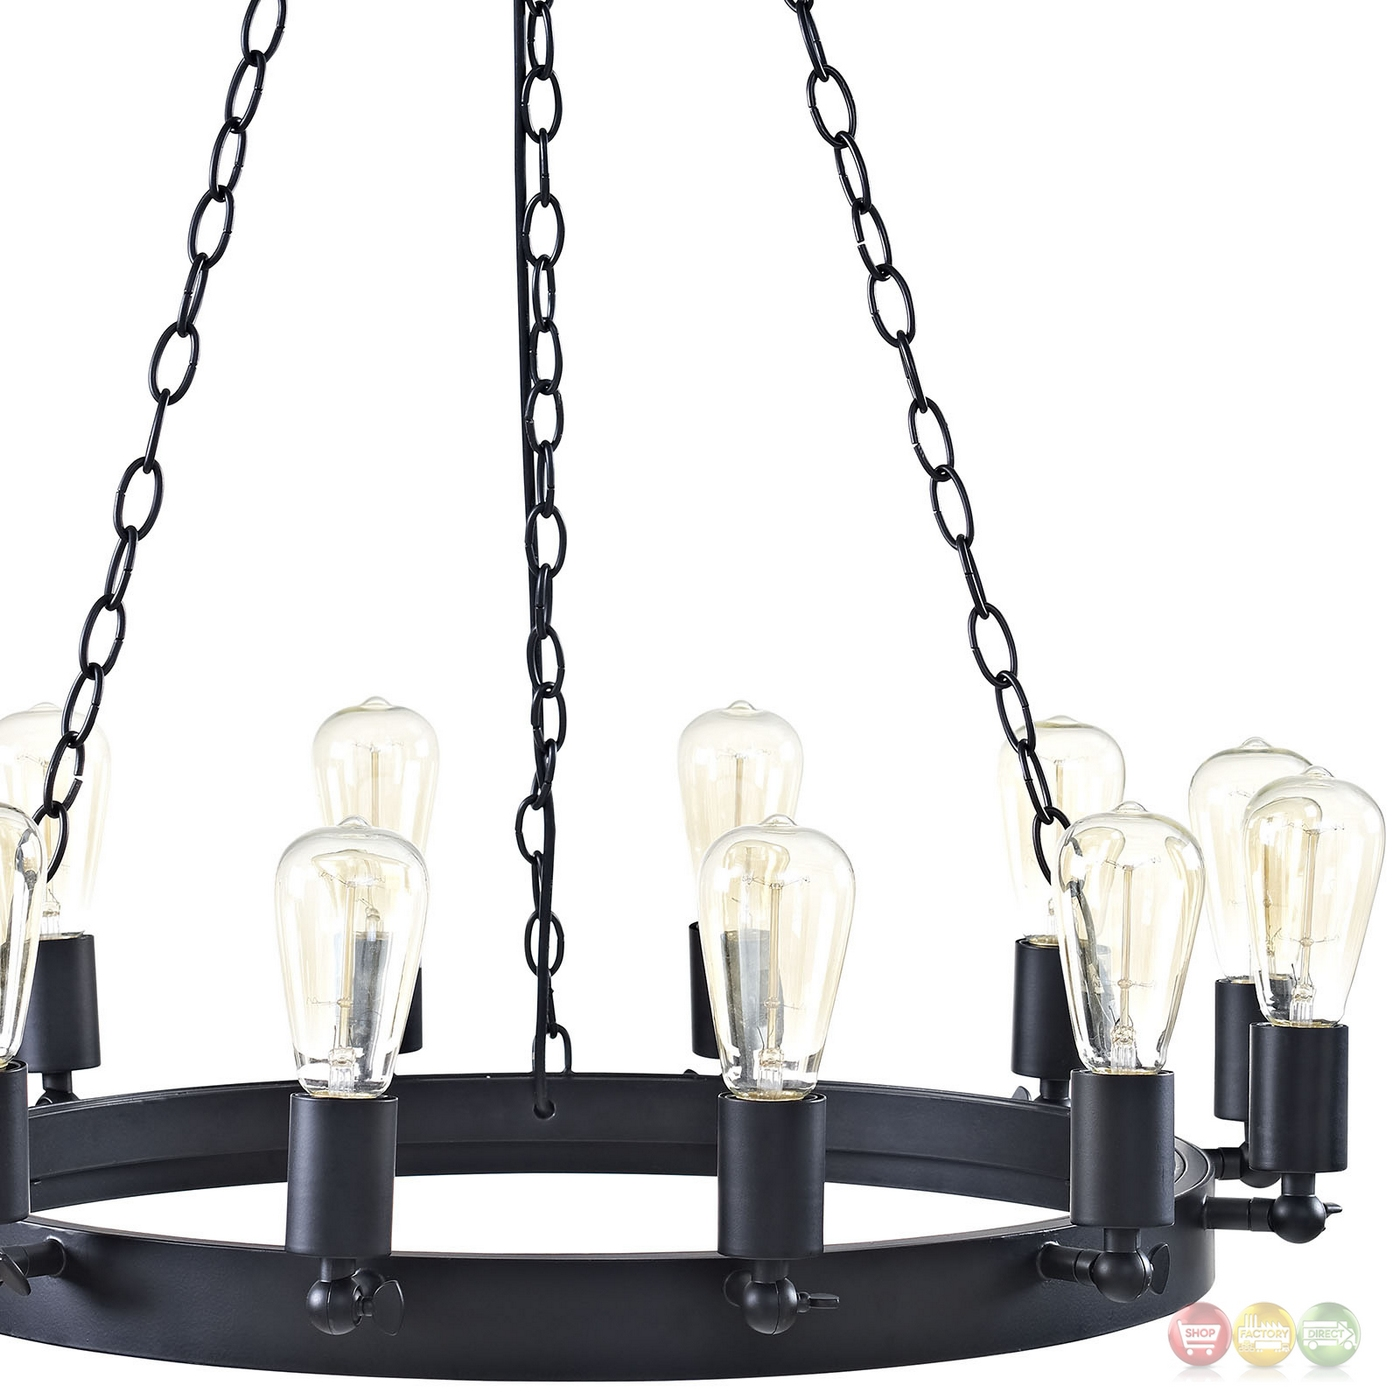 Teleport industrial 29 suspension style 12 bulb Industrial style chandeliers